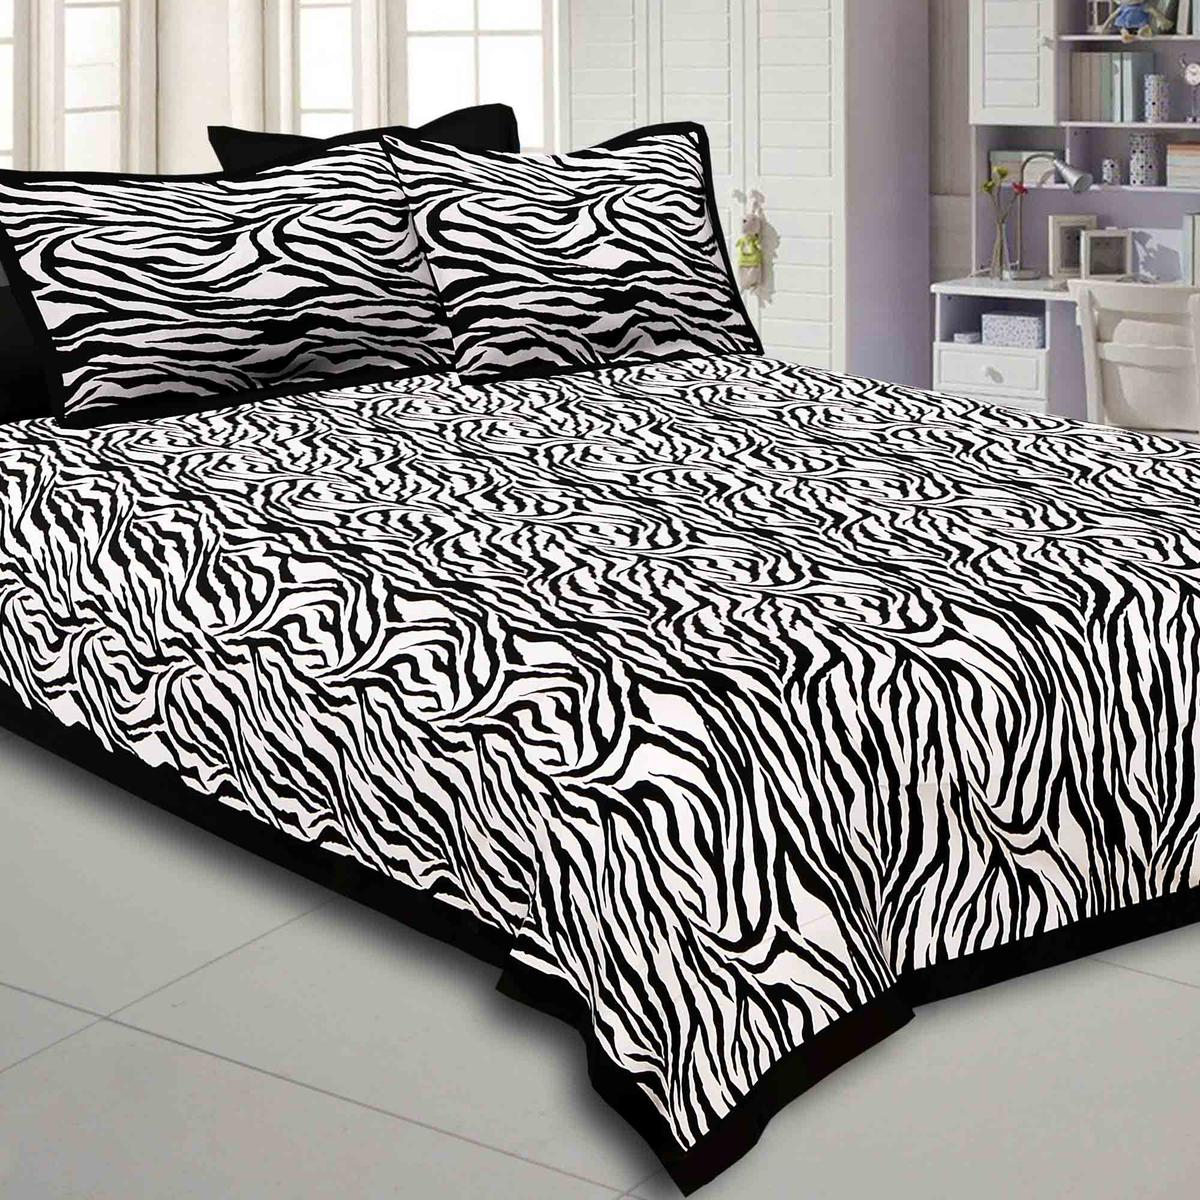 Exceptional Black-White Colored Zebra Printed Pure Cotton Double Bedsheet With Pillow Cover Set